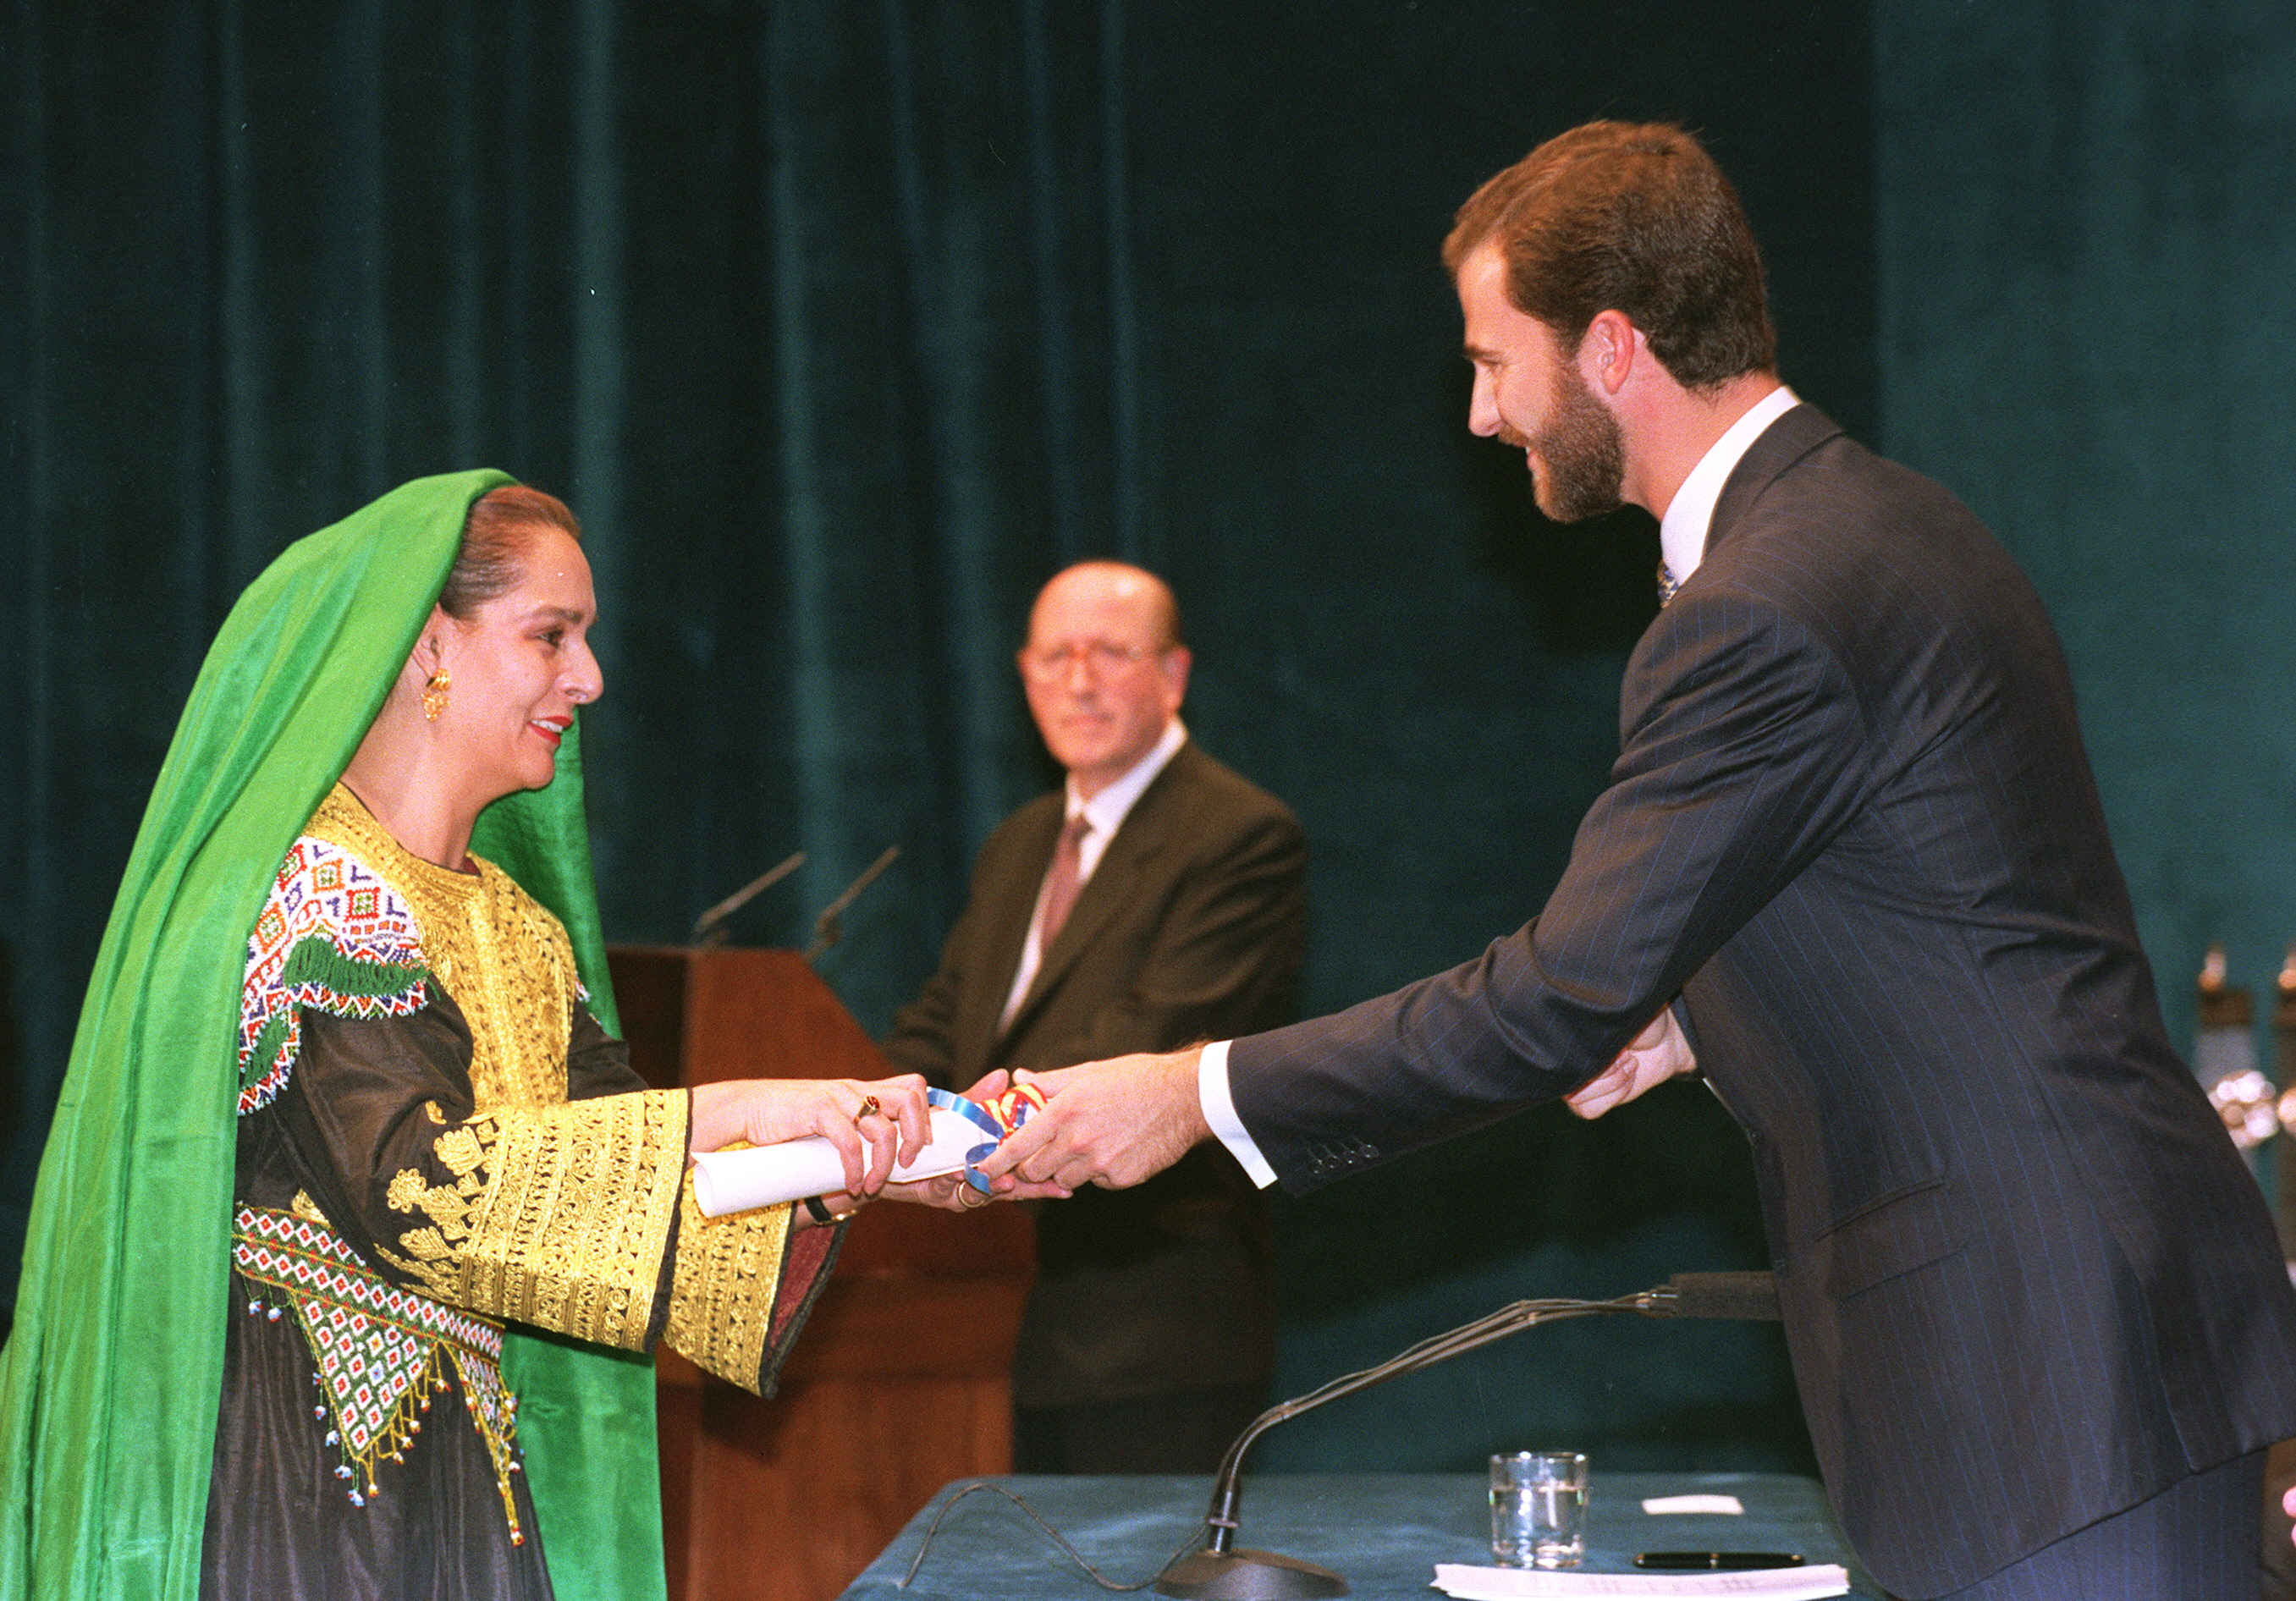 Fatana Ishaq Galiani, 1998 Prince of Asturias Award for Cooperation